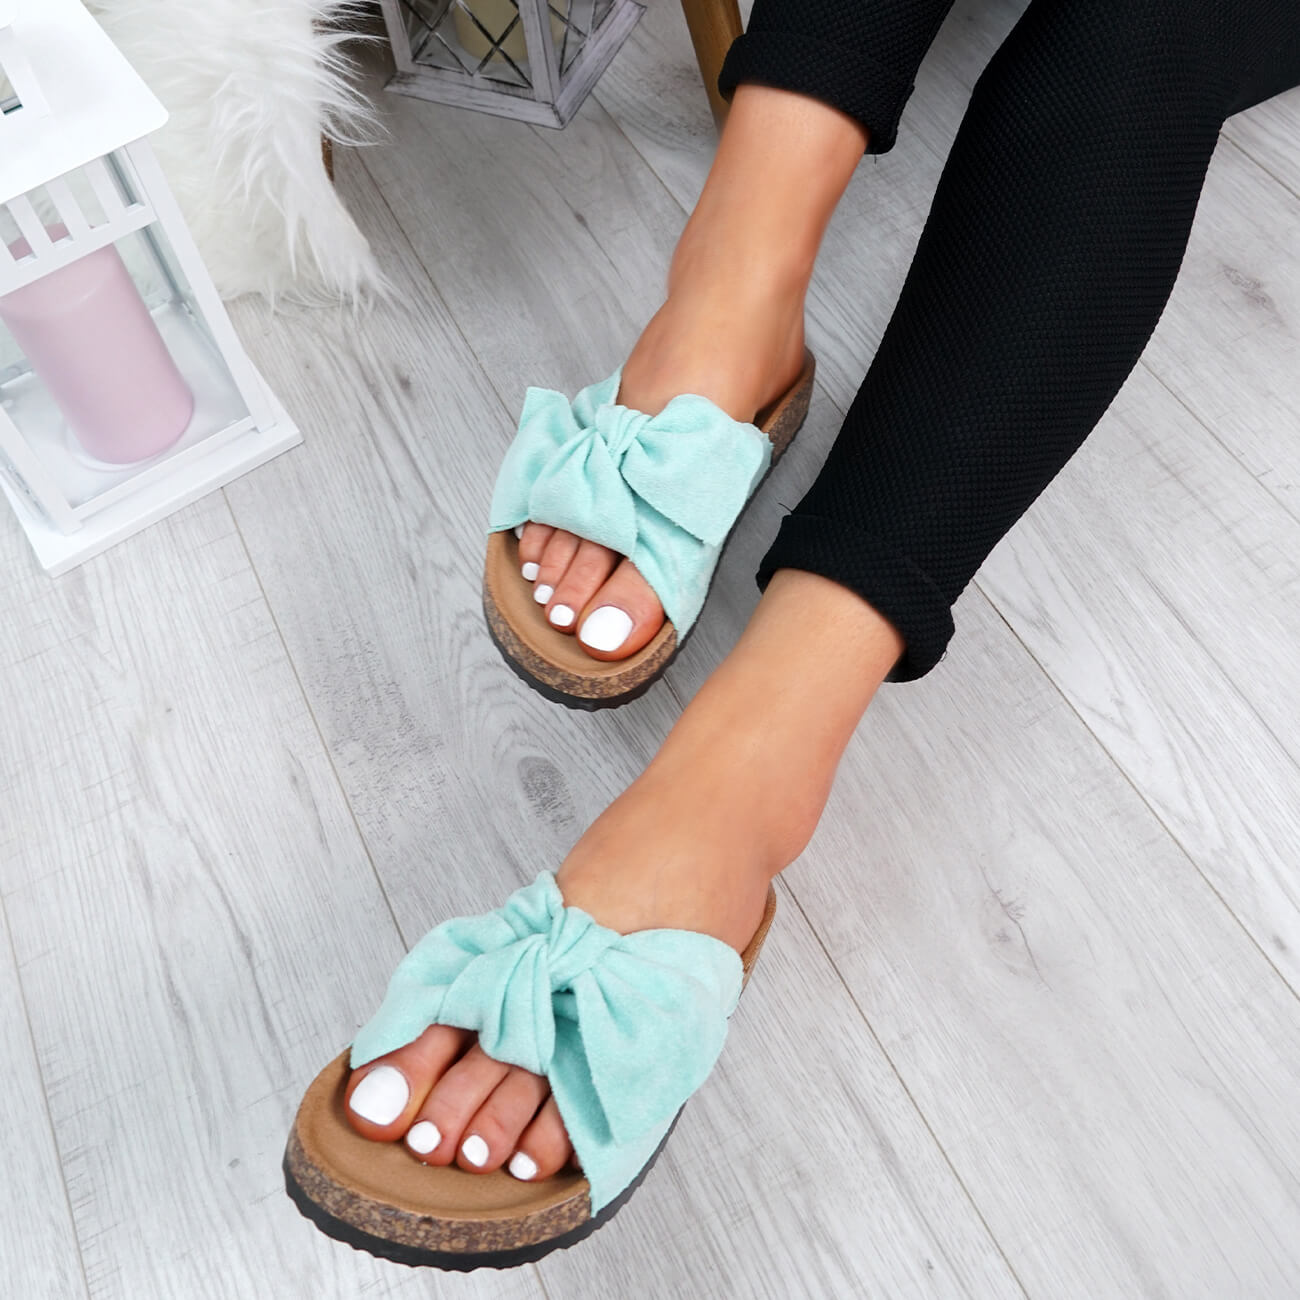 WOMENS-LADIES-SLIP-ON-FLAT-SANDALS-BOW-SLIDERS-SUMMER-CASUAL-SHOES-SIZE thumbnail 23